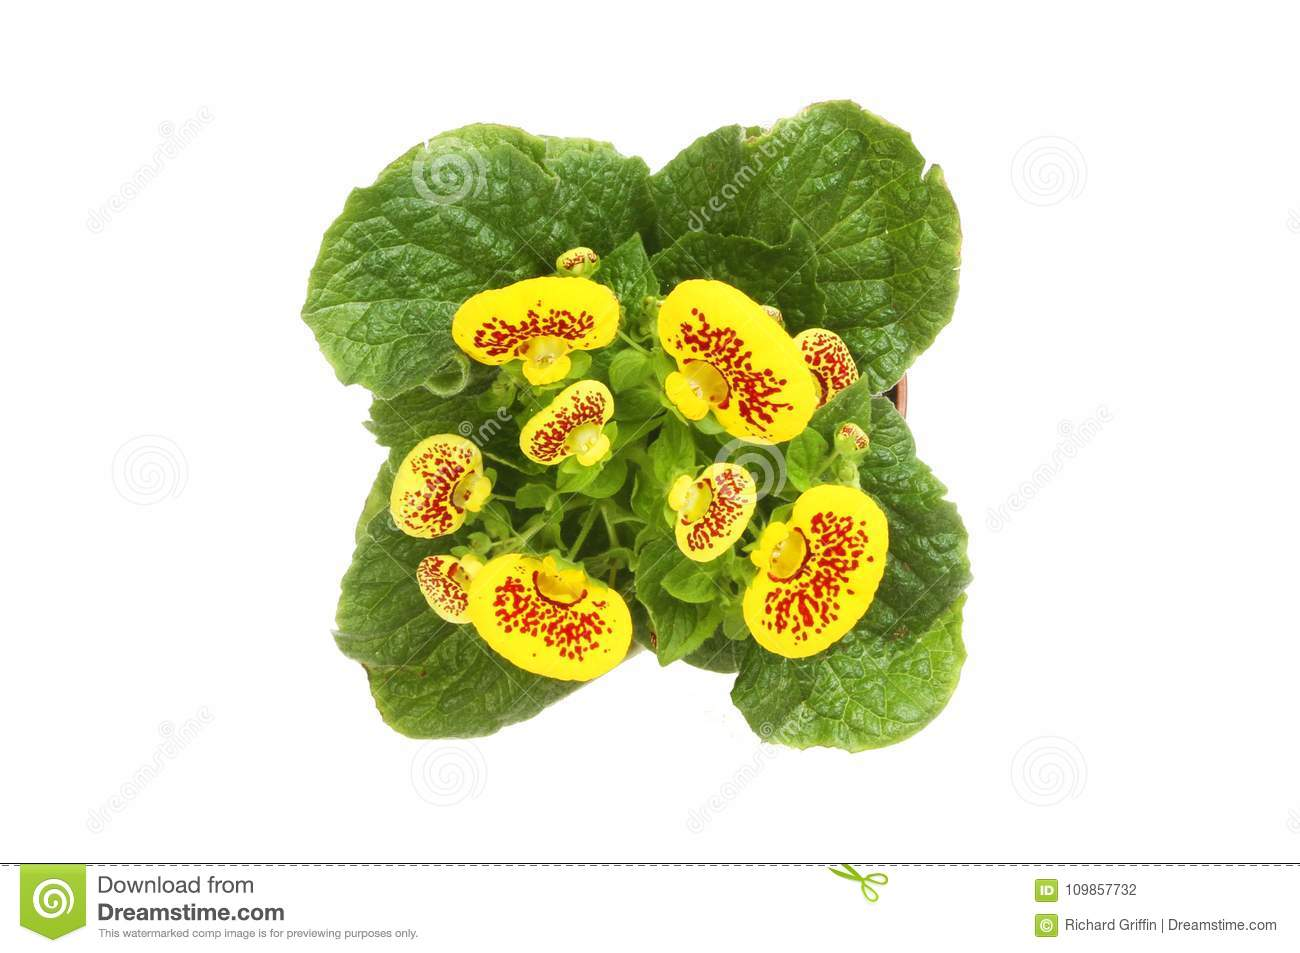 Calceolaria flowers isolated